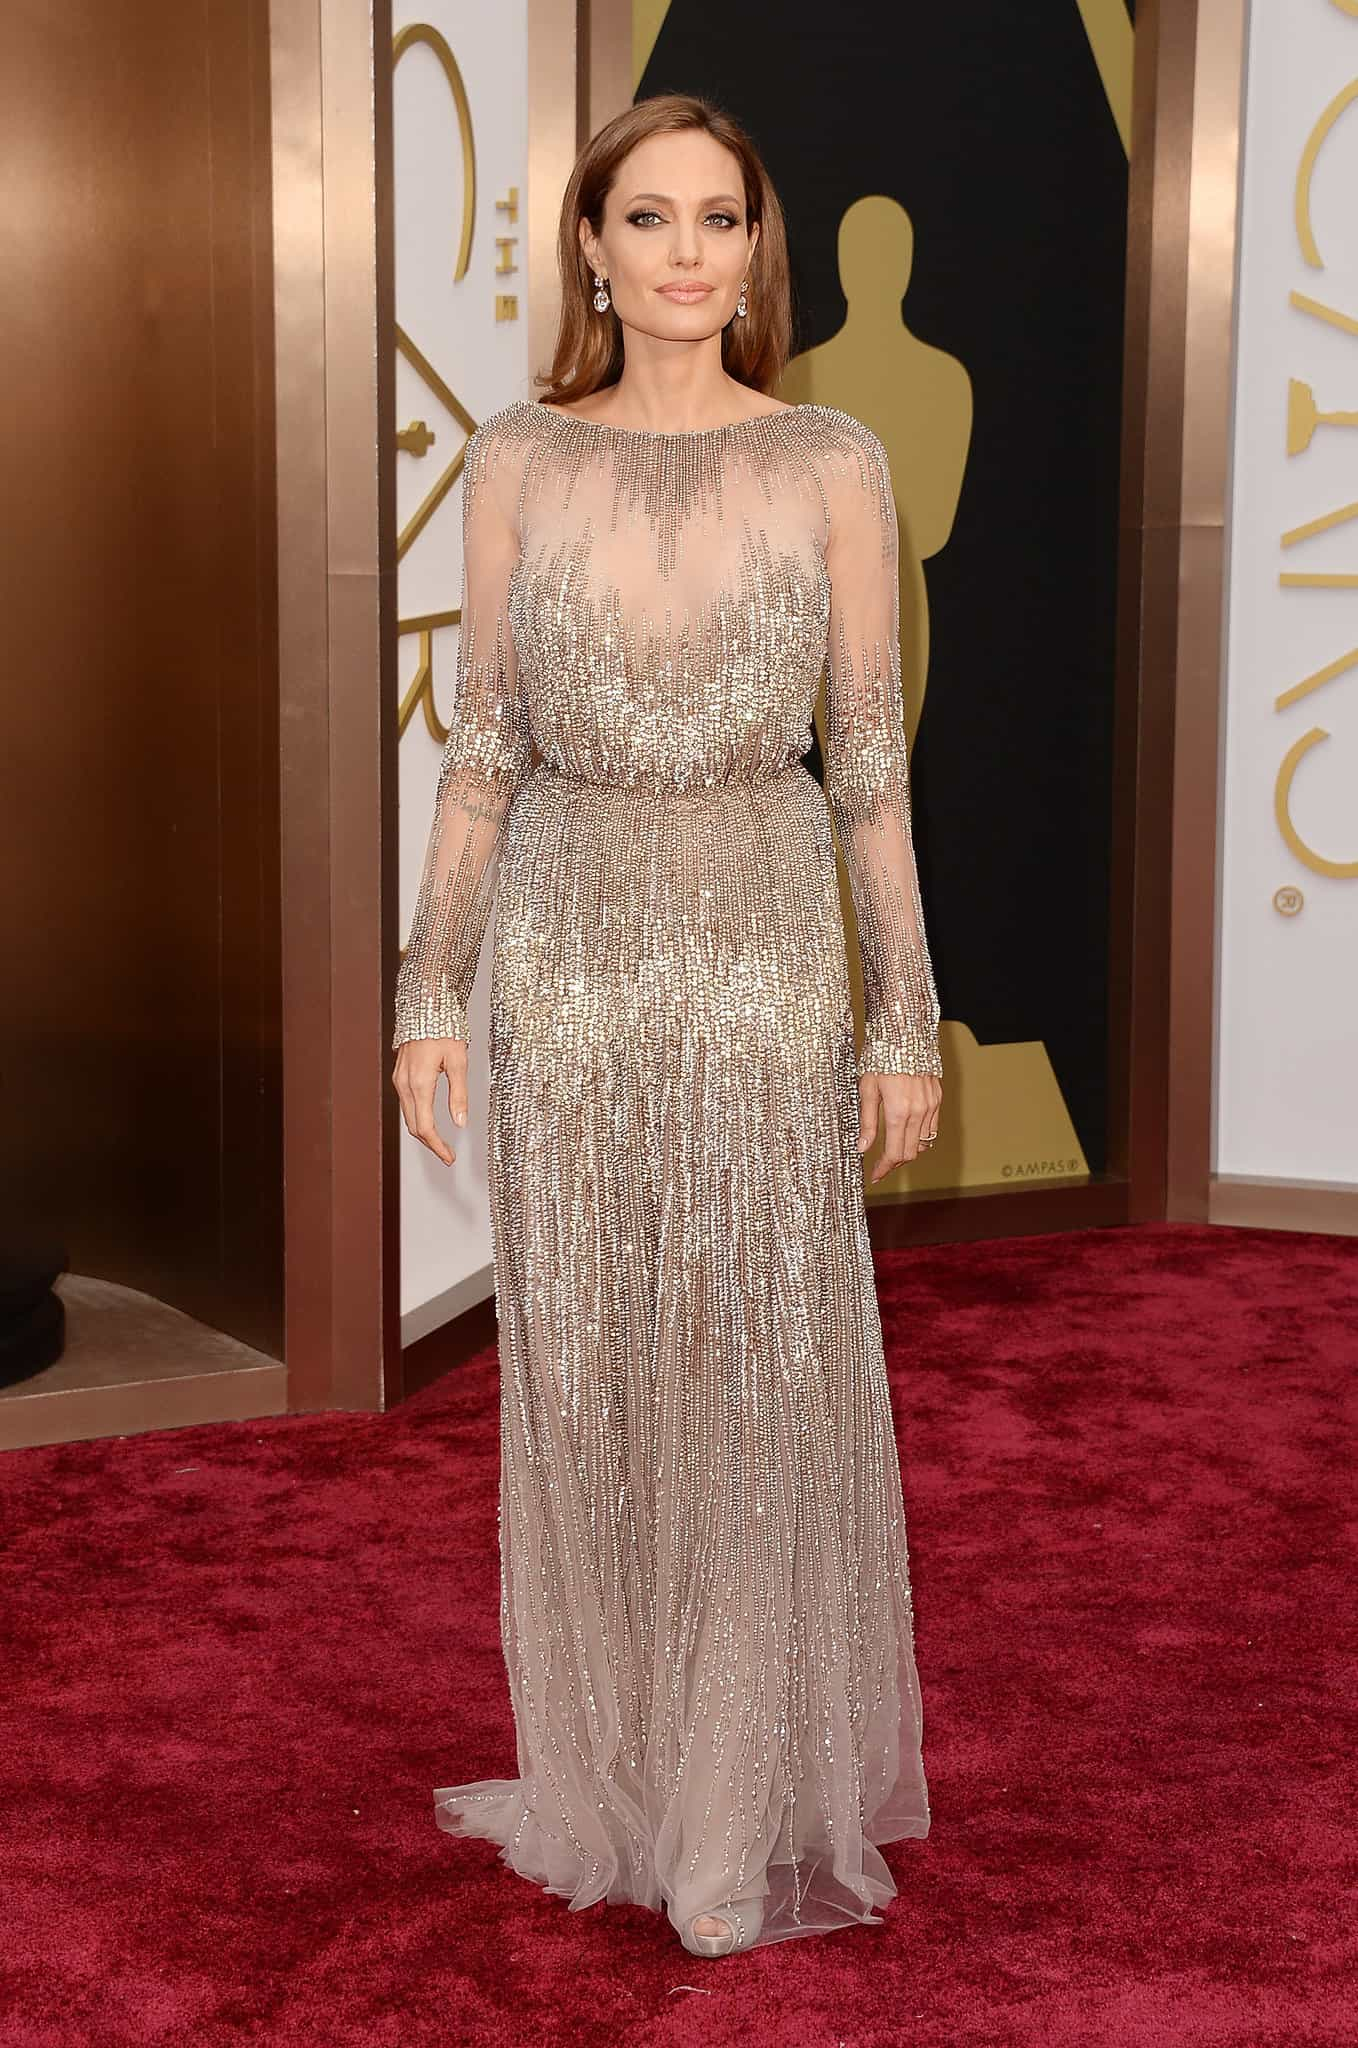 angelina-jolie-2014-oscars-red-carpet-